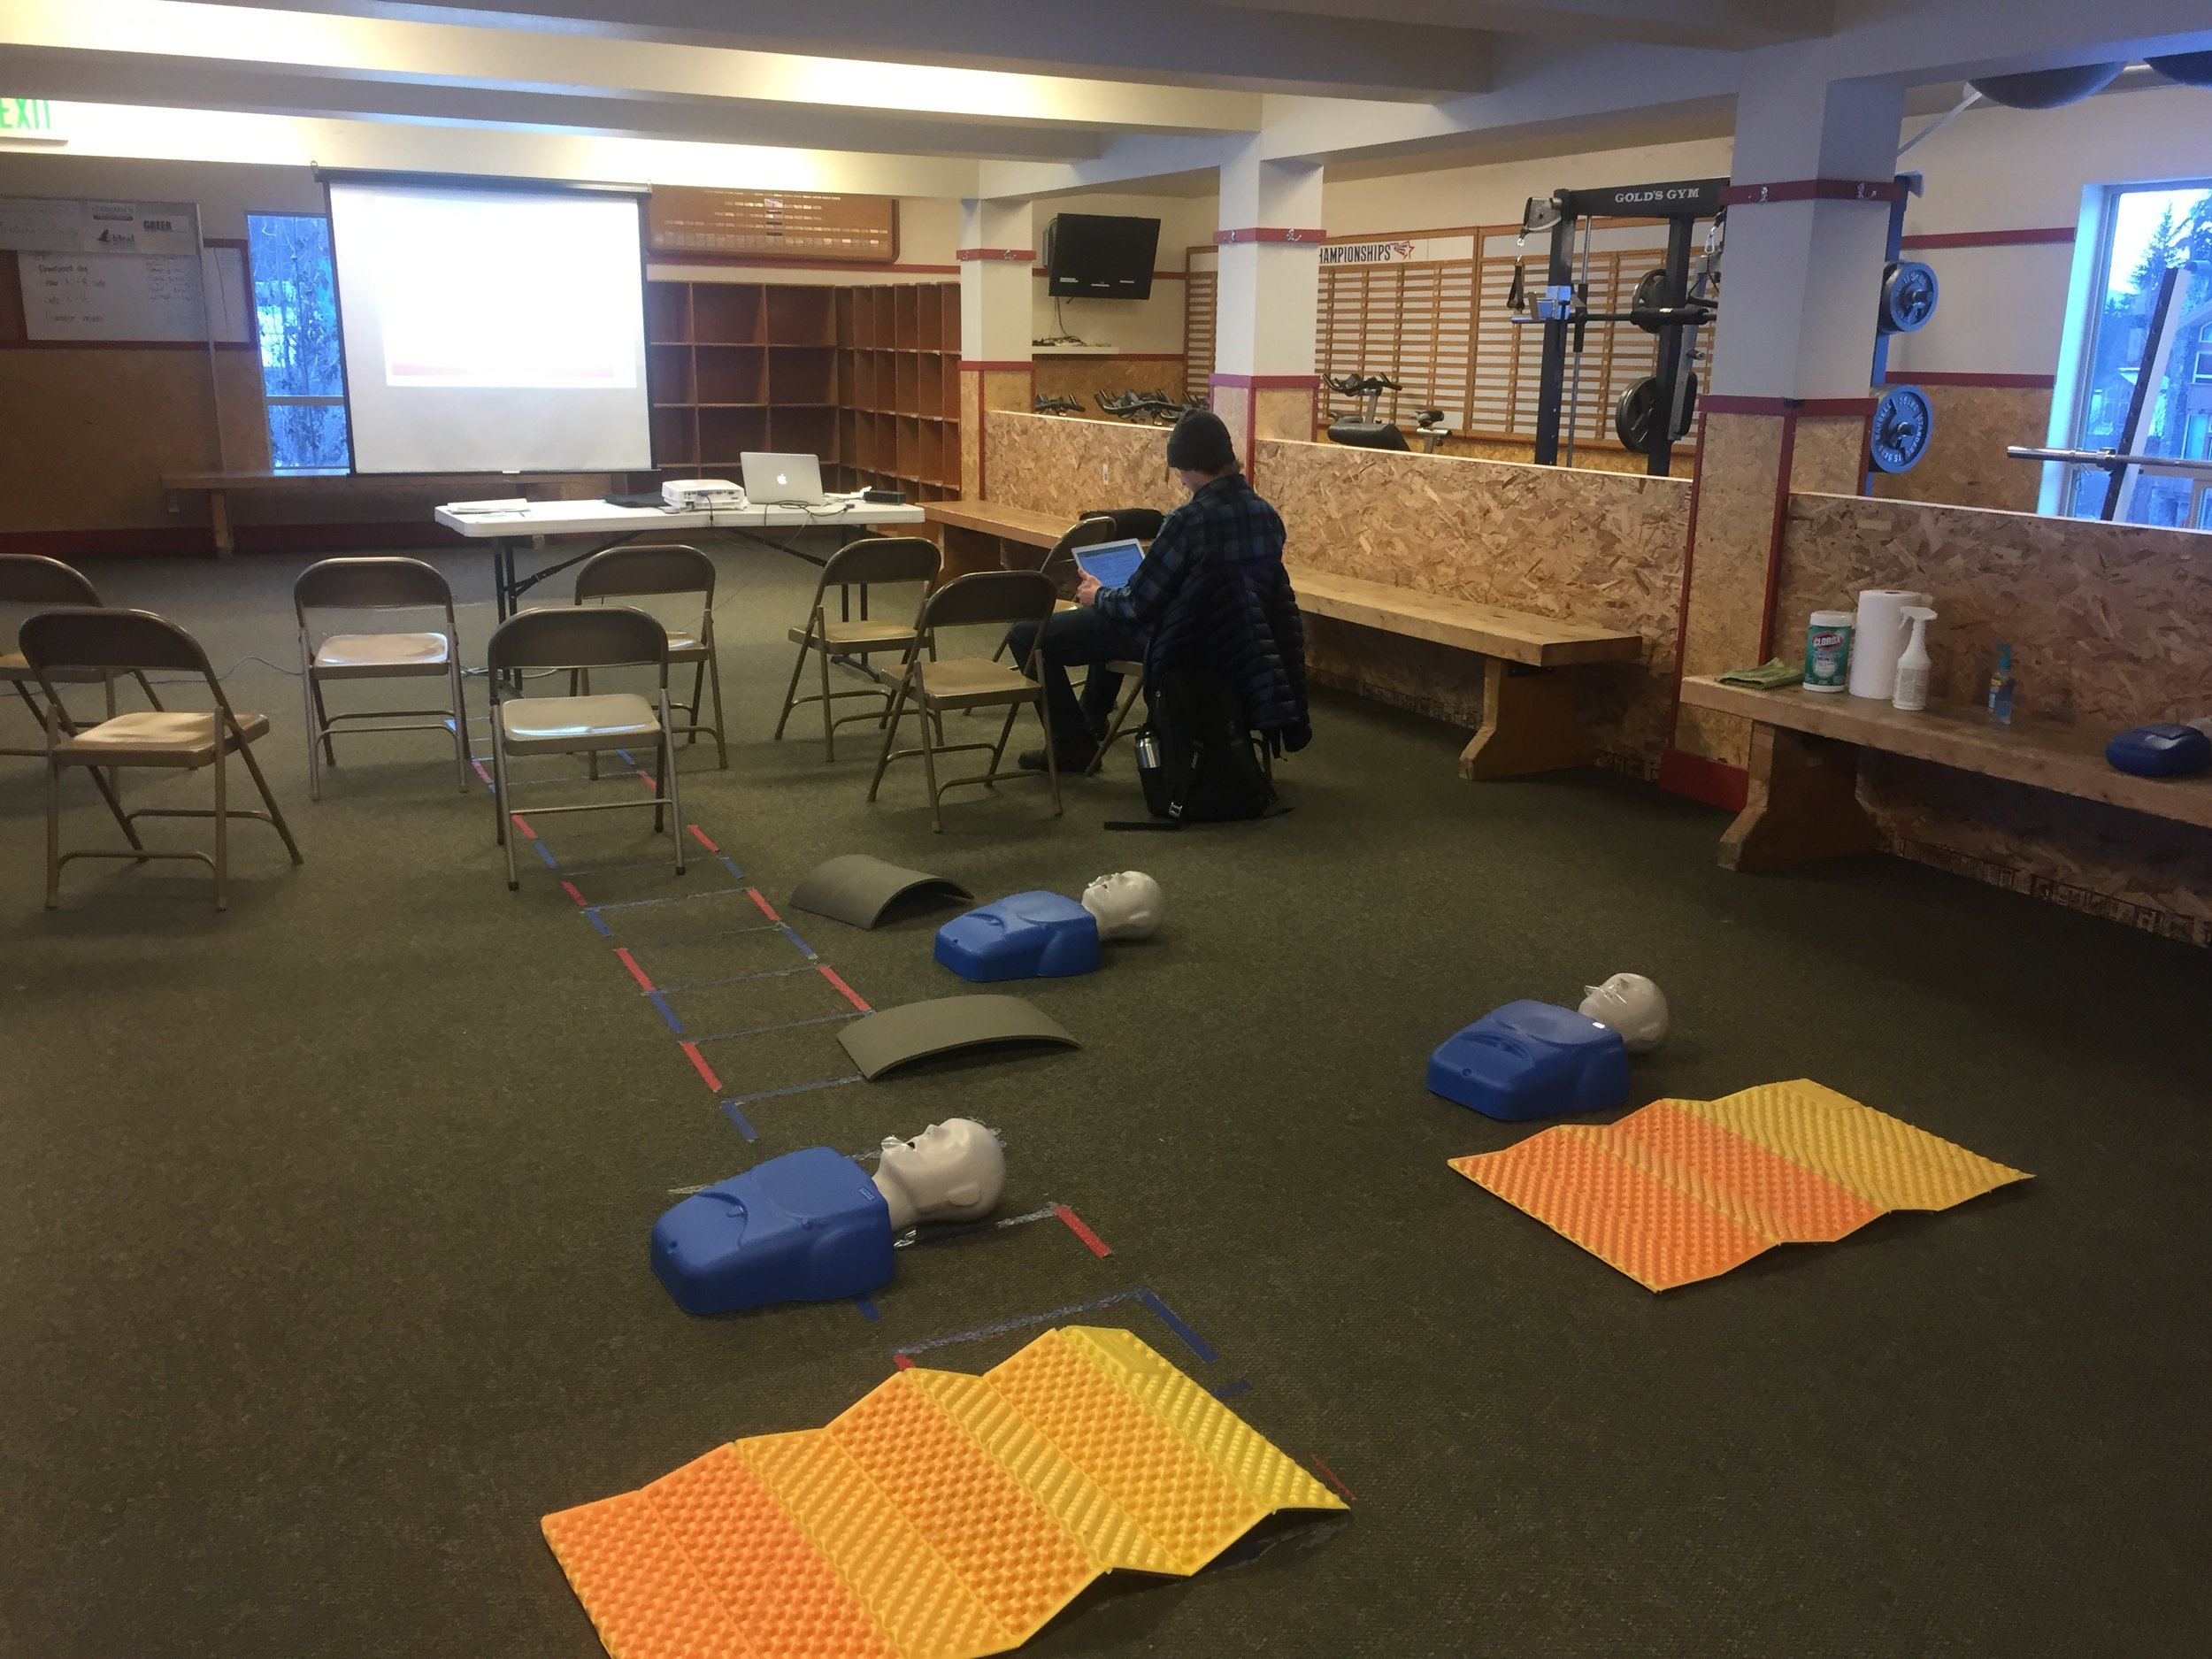 Wilderness Medical, First Aid, CPR Training - Find out about the organizations we work with to provide industry leading safety training for the workplace and recreation.